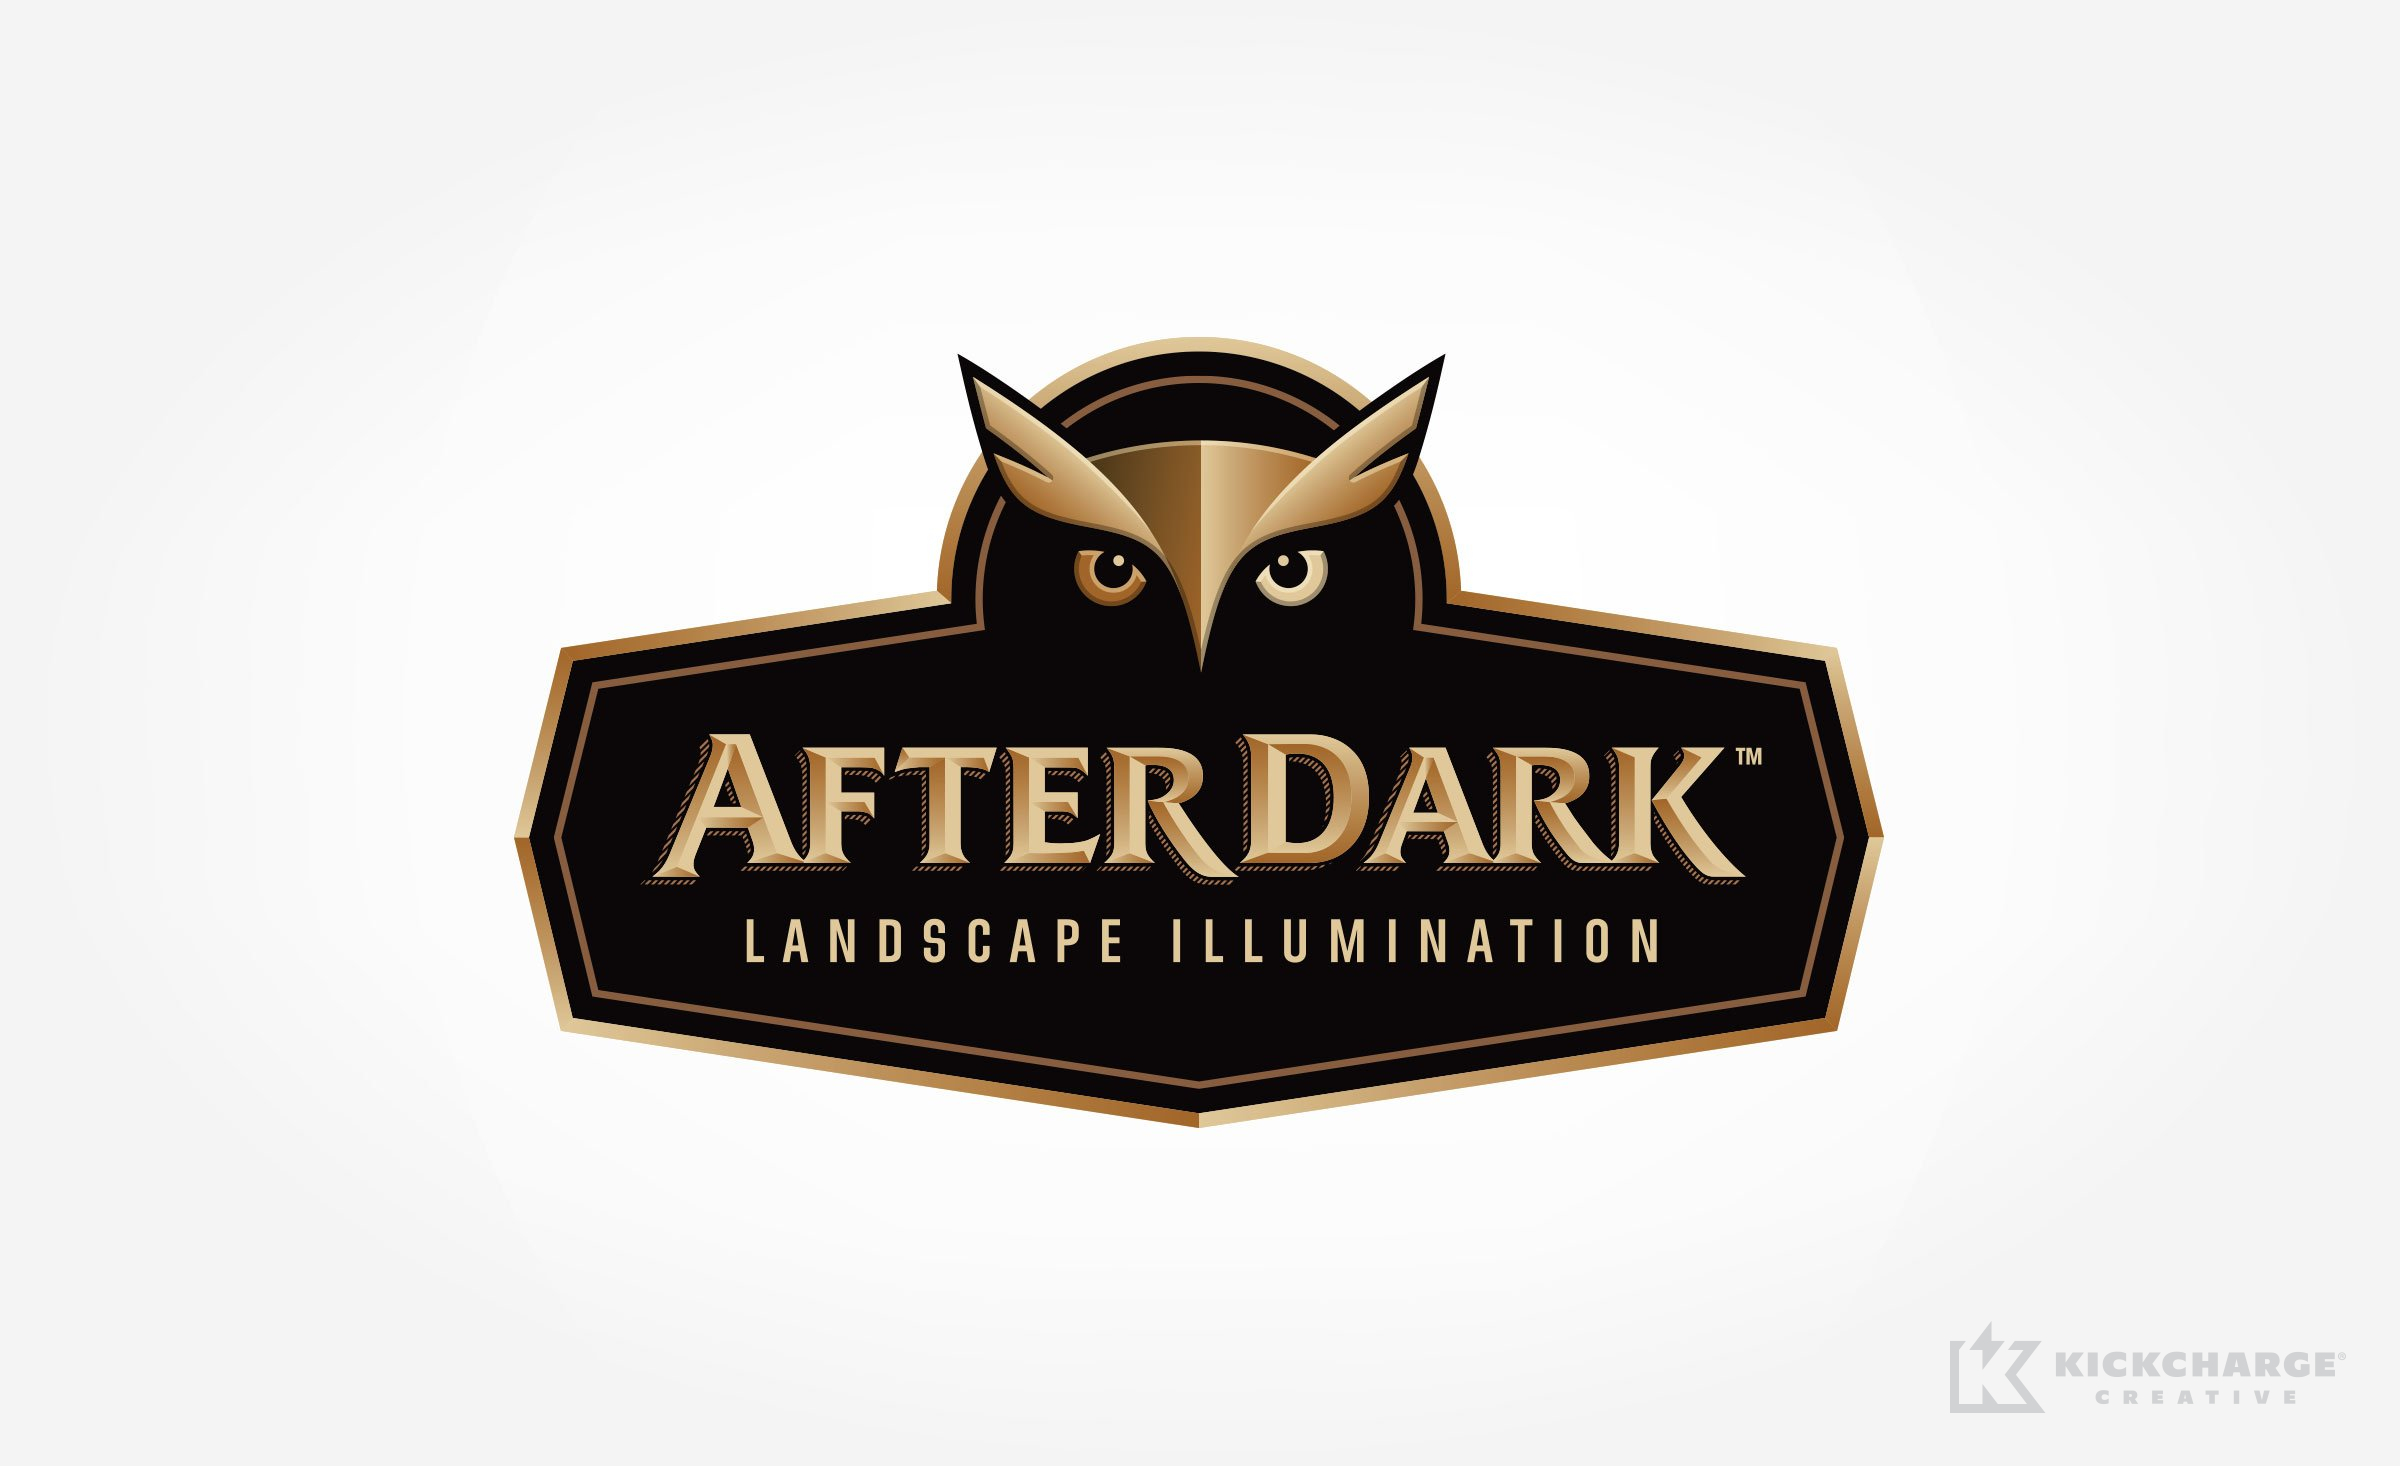 After Dark Landscape Illumination